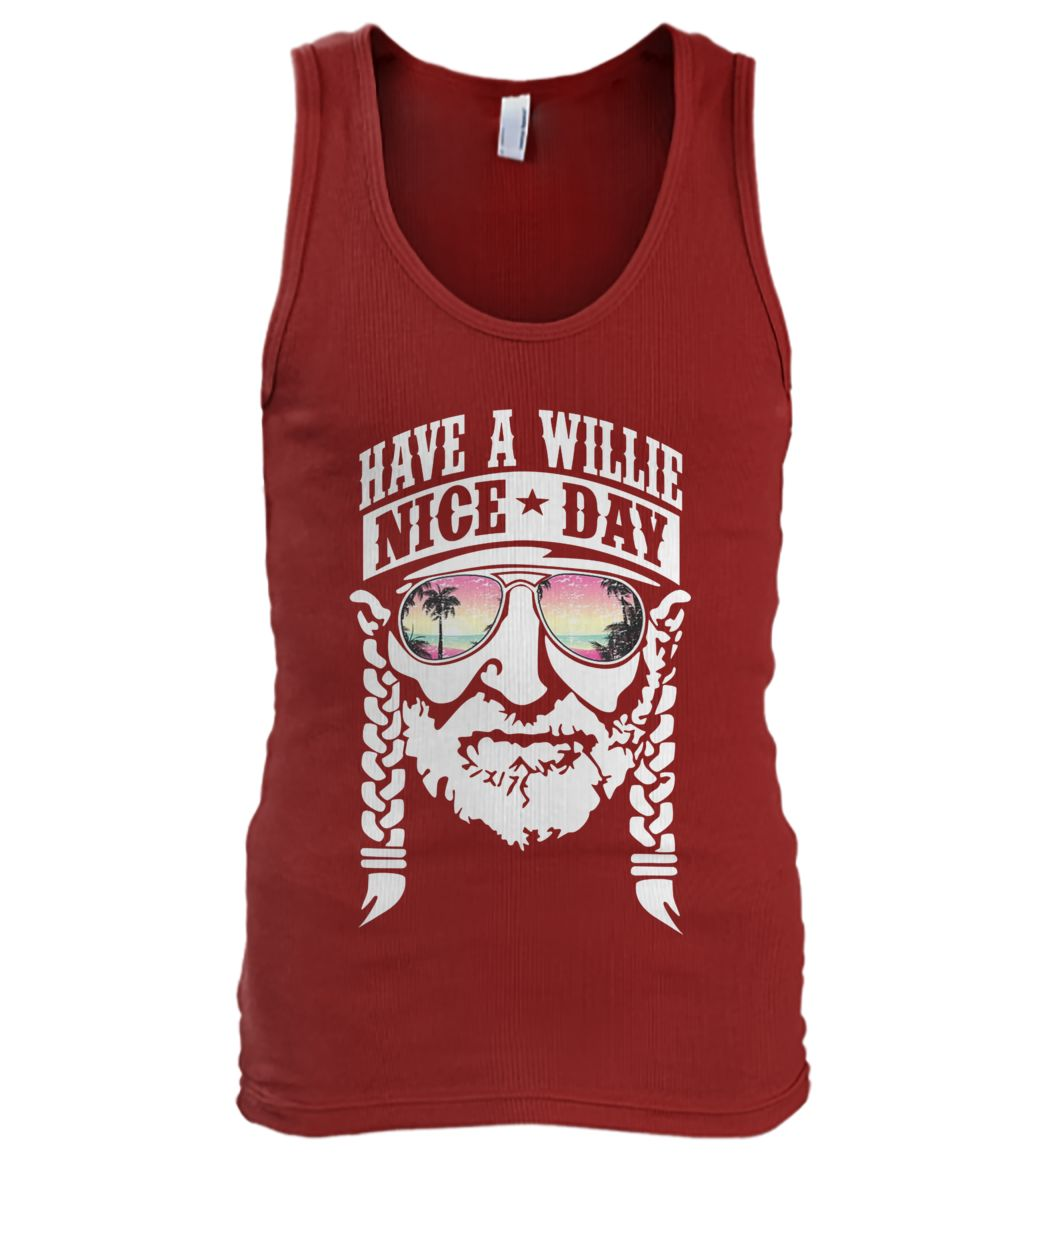 Have a willie nice day willie nelson men's tank top